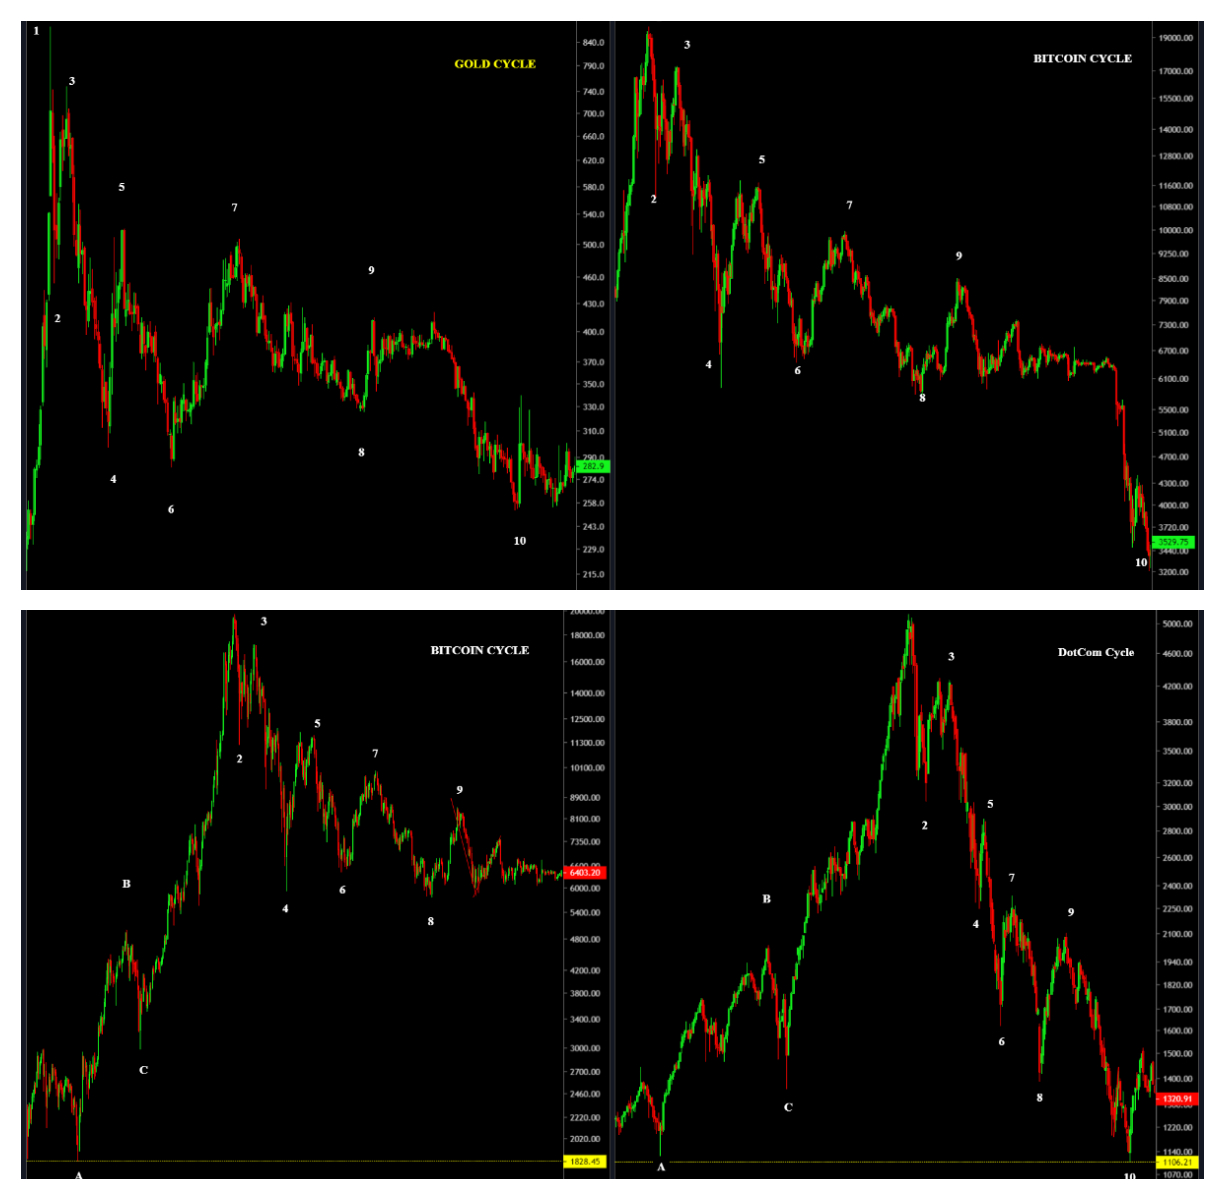 Repeating Cycles of Bitcoin, Gold & DotCom.